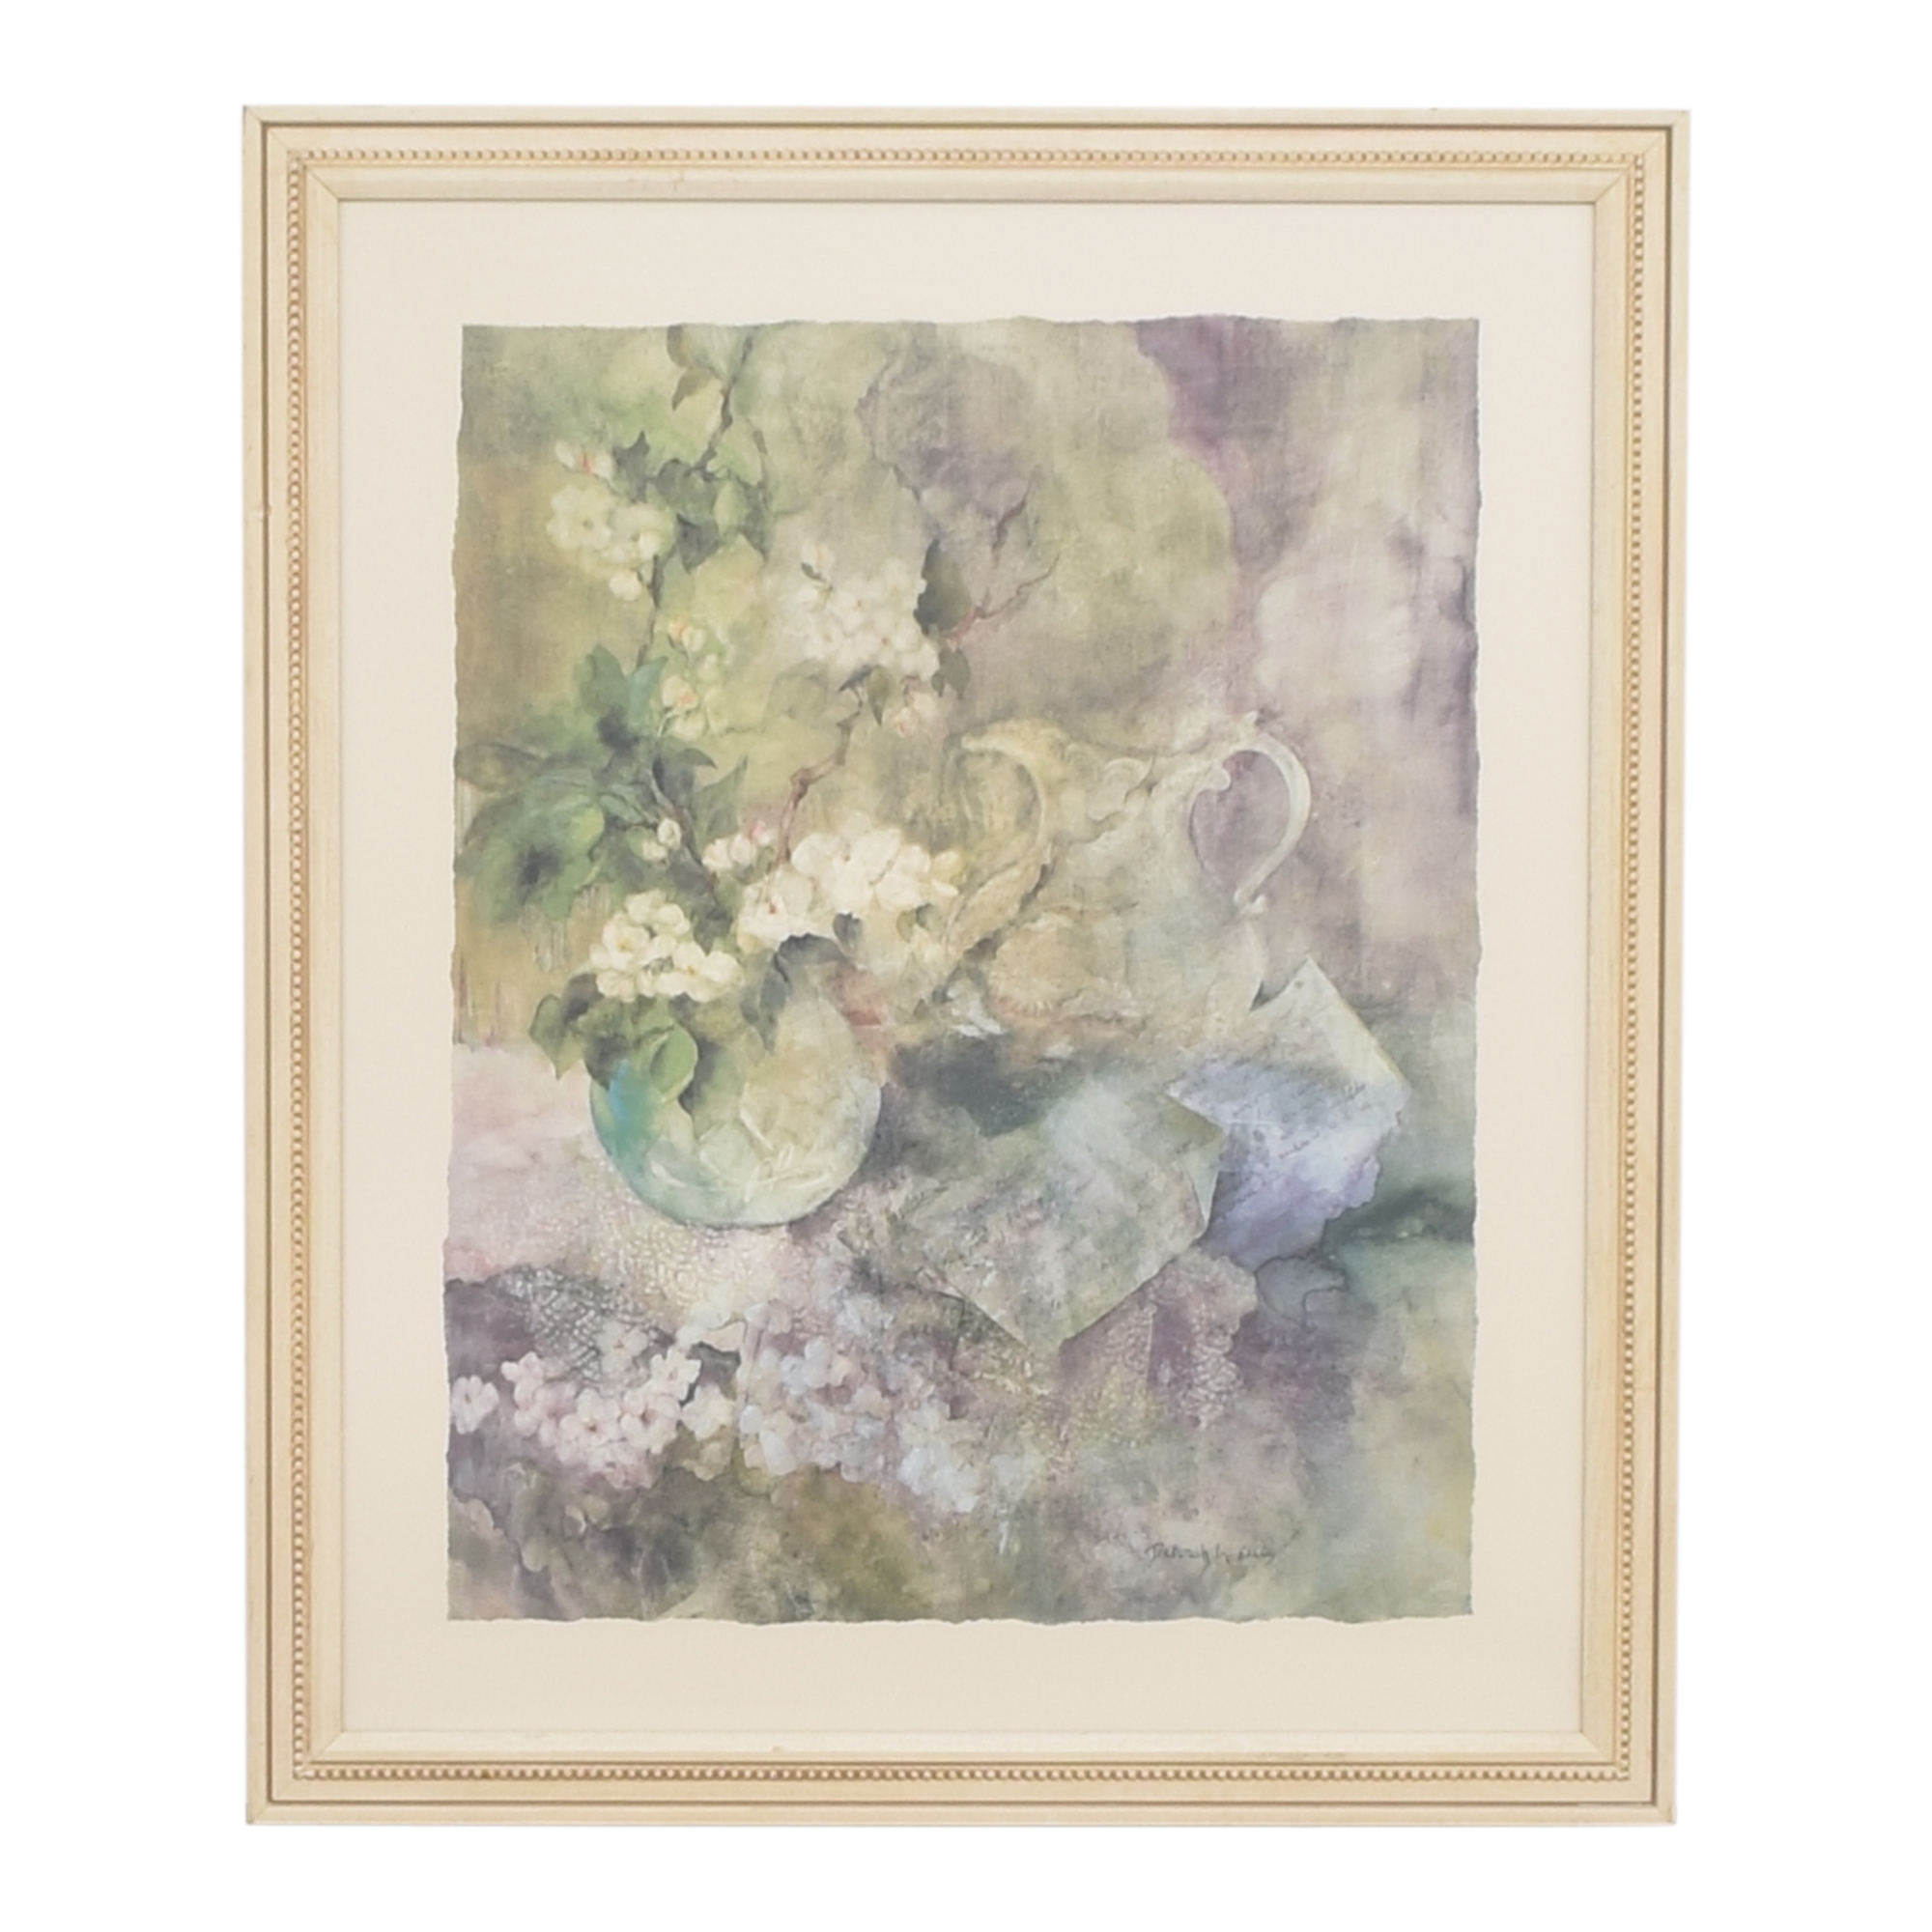 West Elm West Elm Watercolor Motif Print on sale